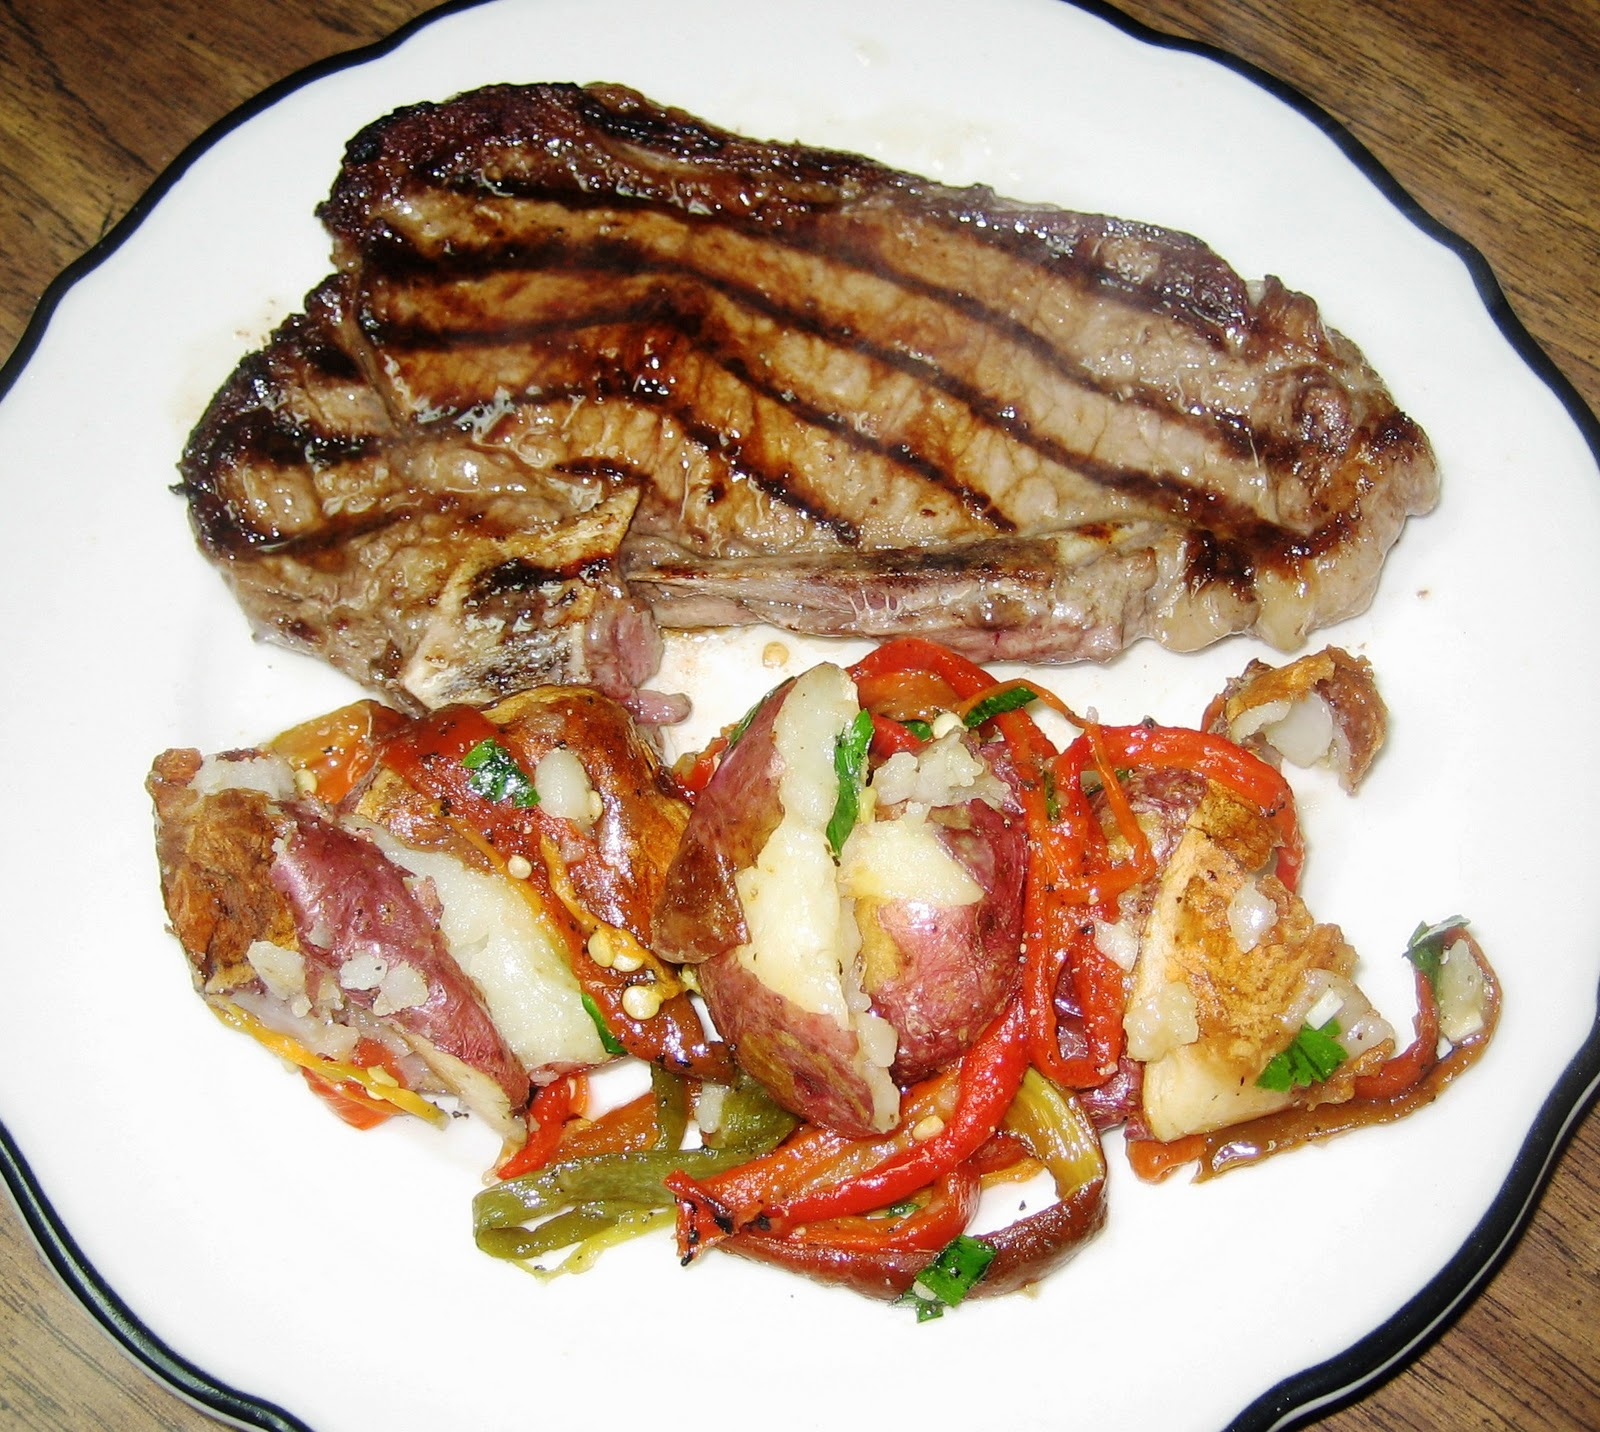 LA CASA E IL GIARDINO: Baked Potatoes with Skins and Charred Peppers